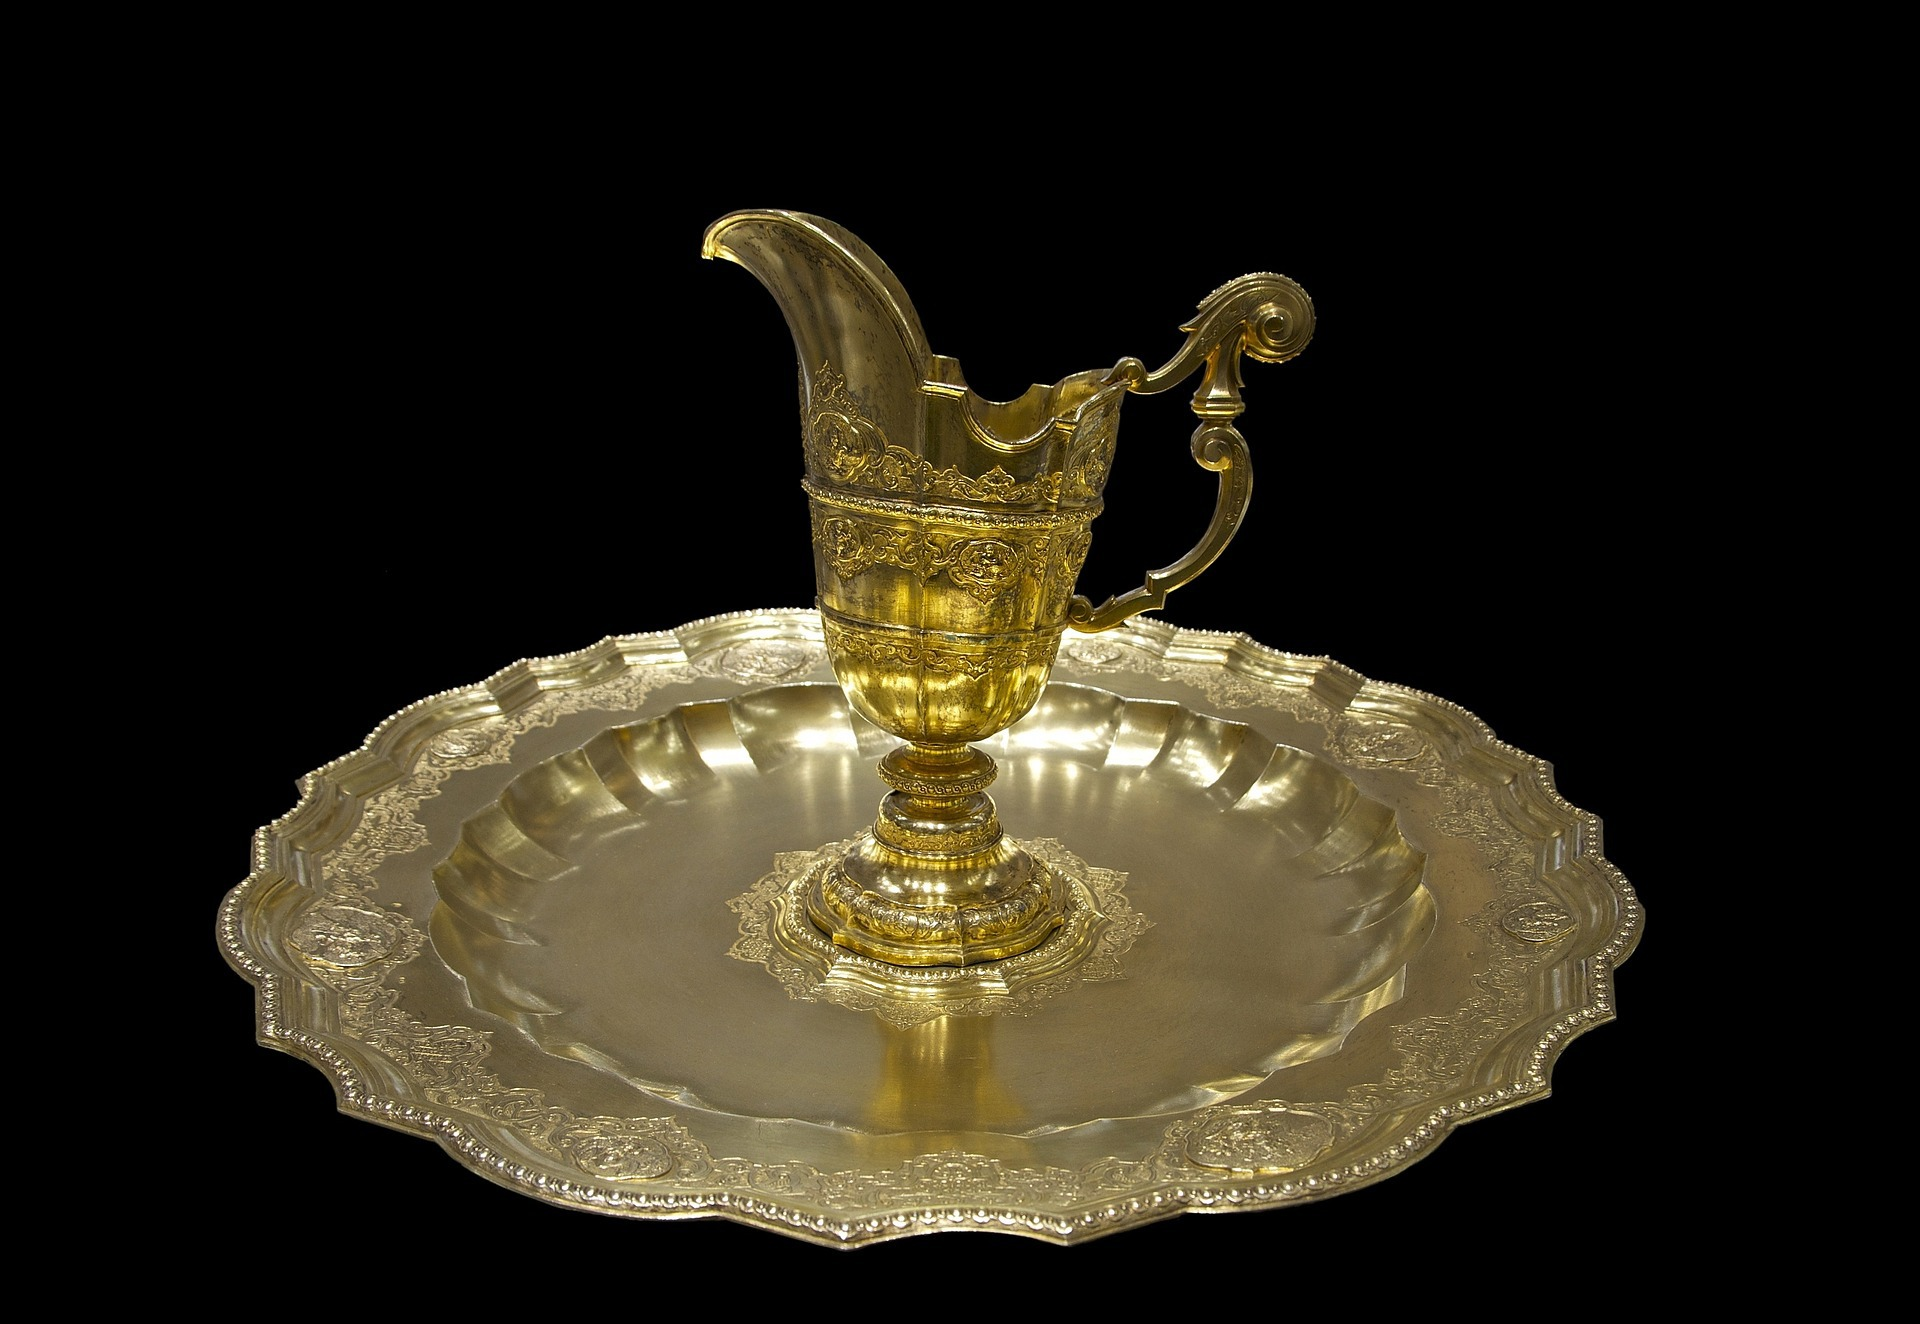 royal dining dishes, silver collection, Hofburg